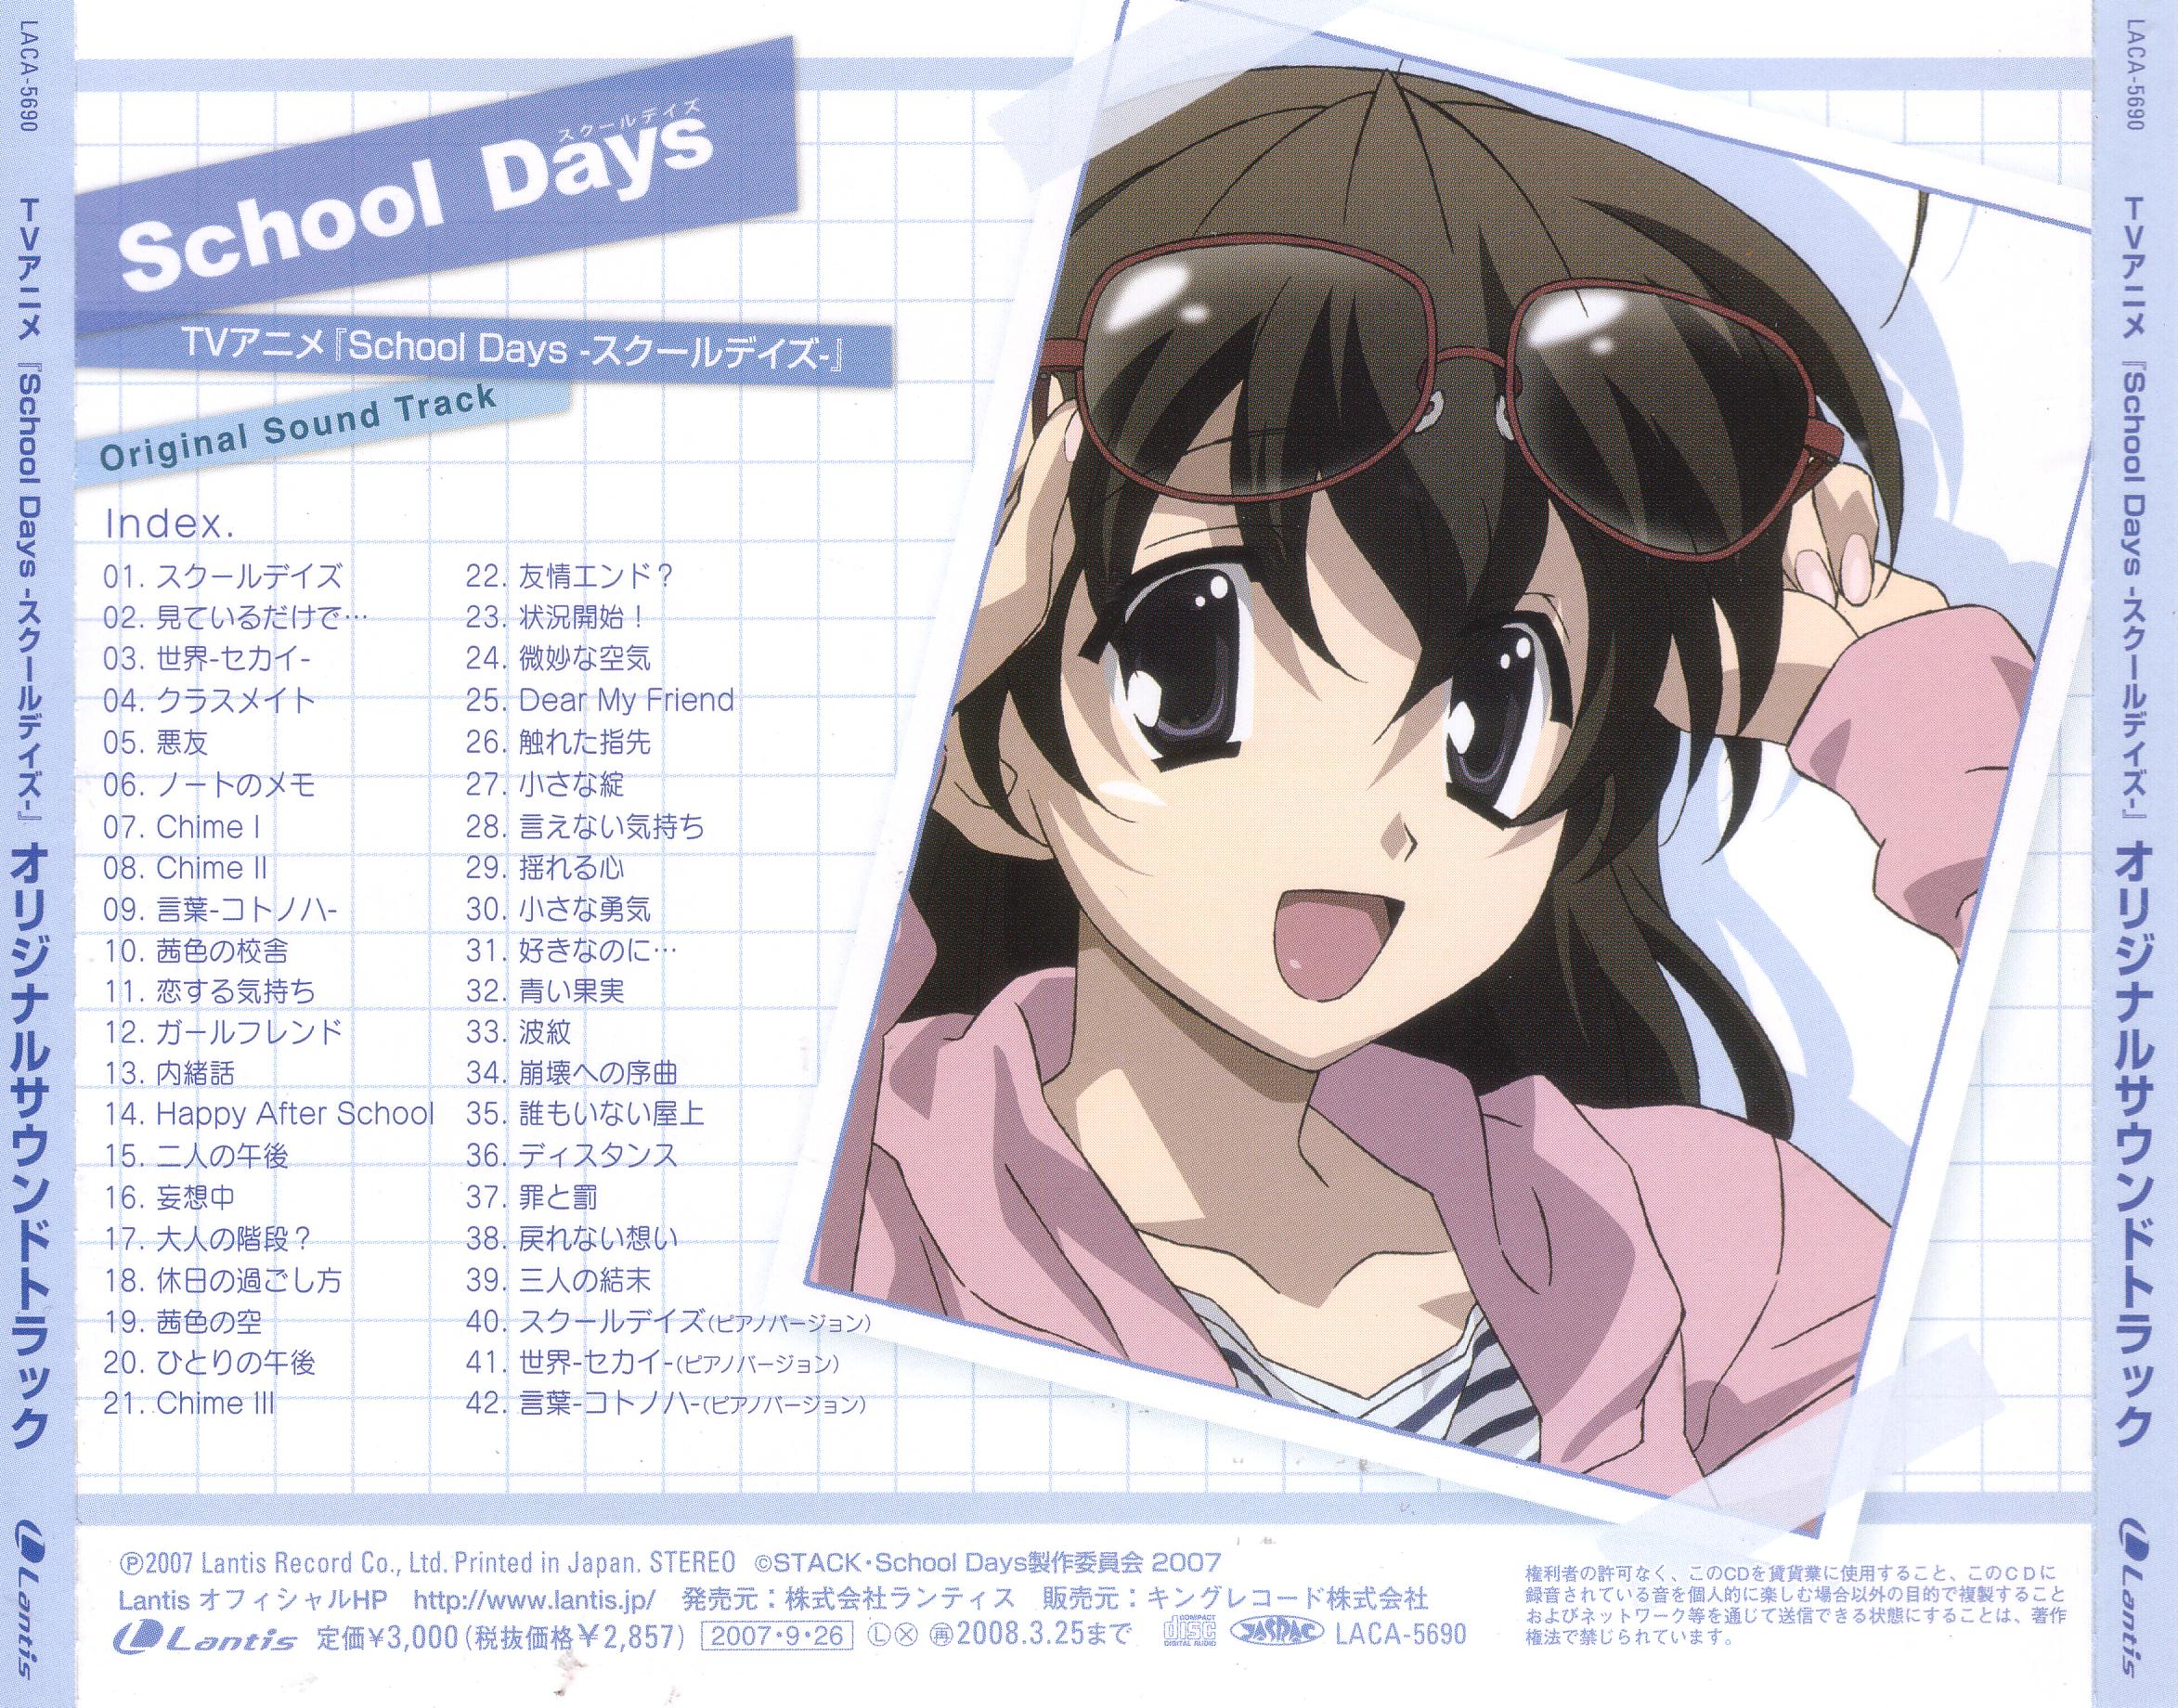 School Days vs College Days - which is the best?